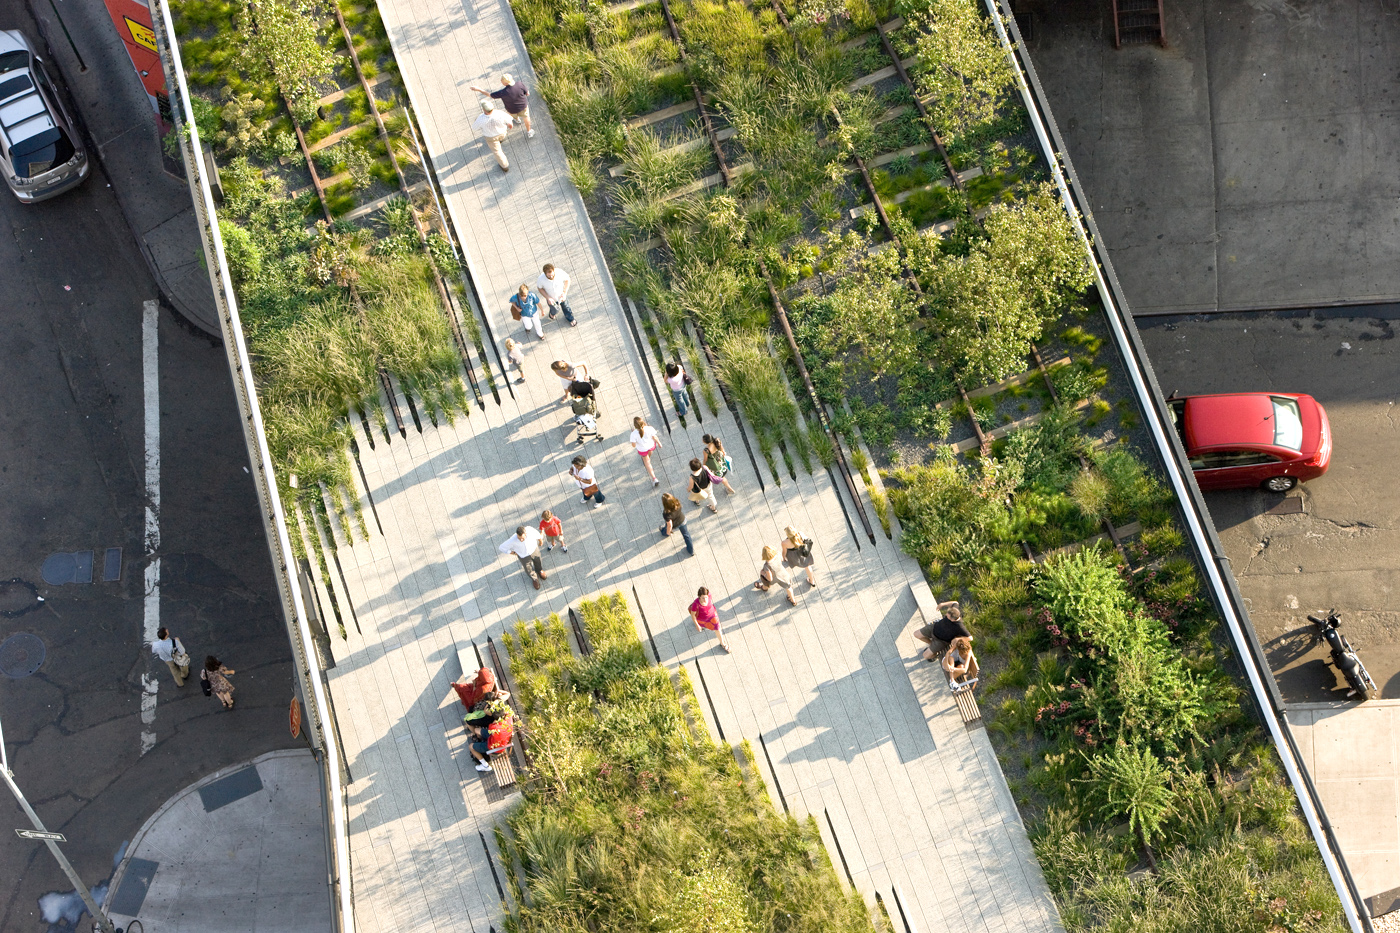 Overhead view of the High Line